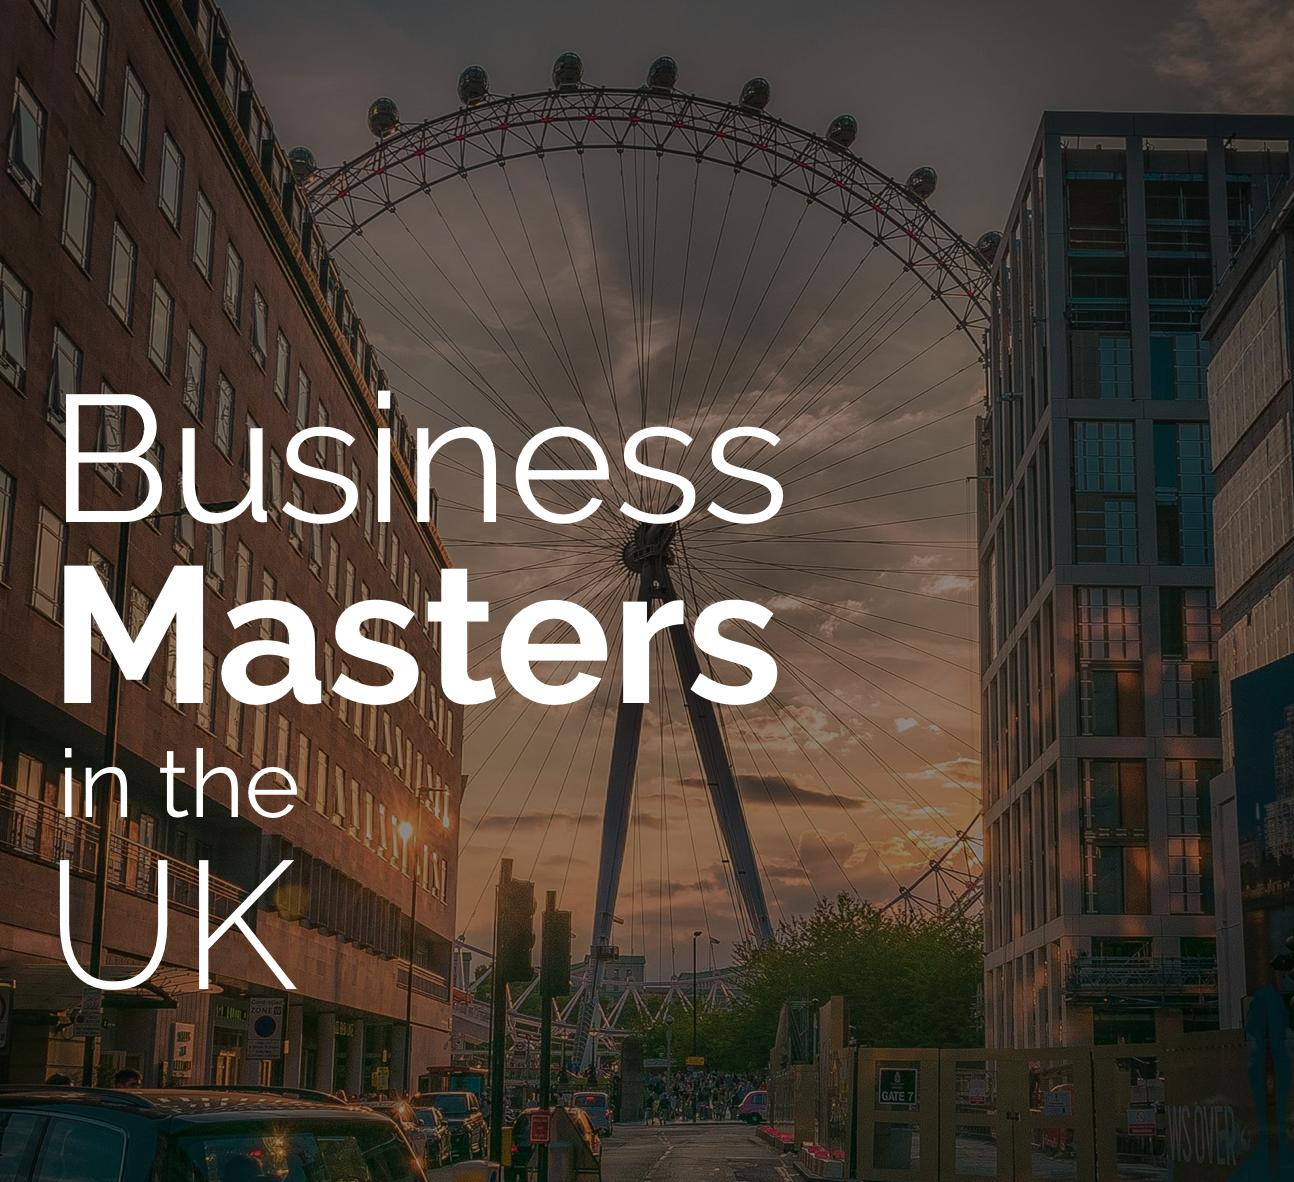 Study Business Masters in the UK